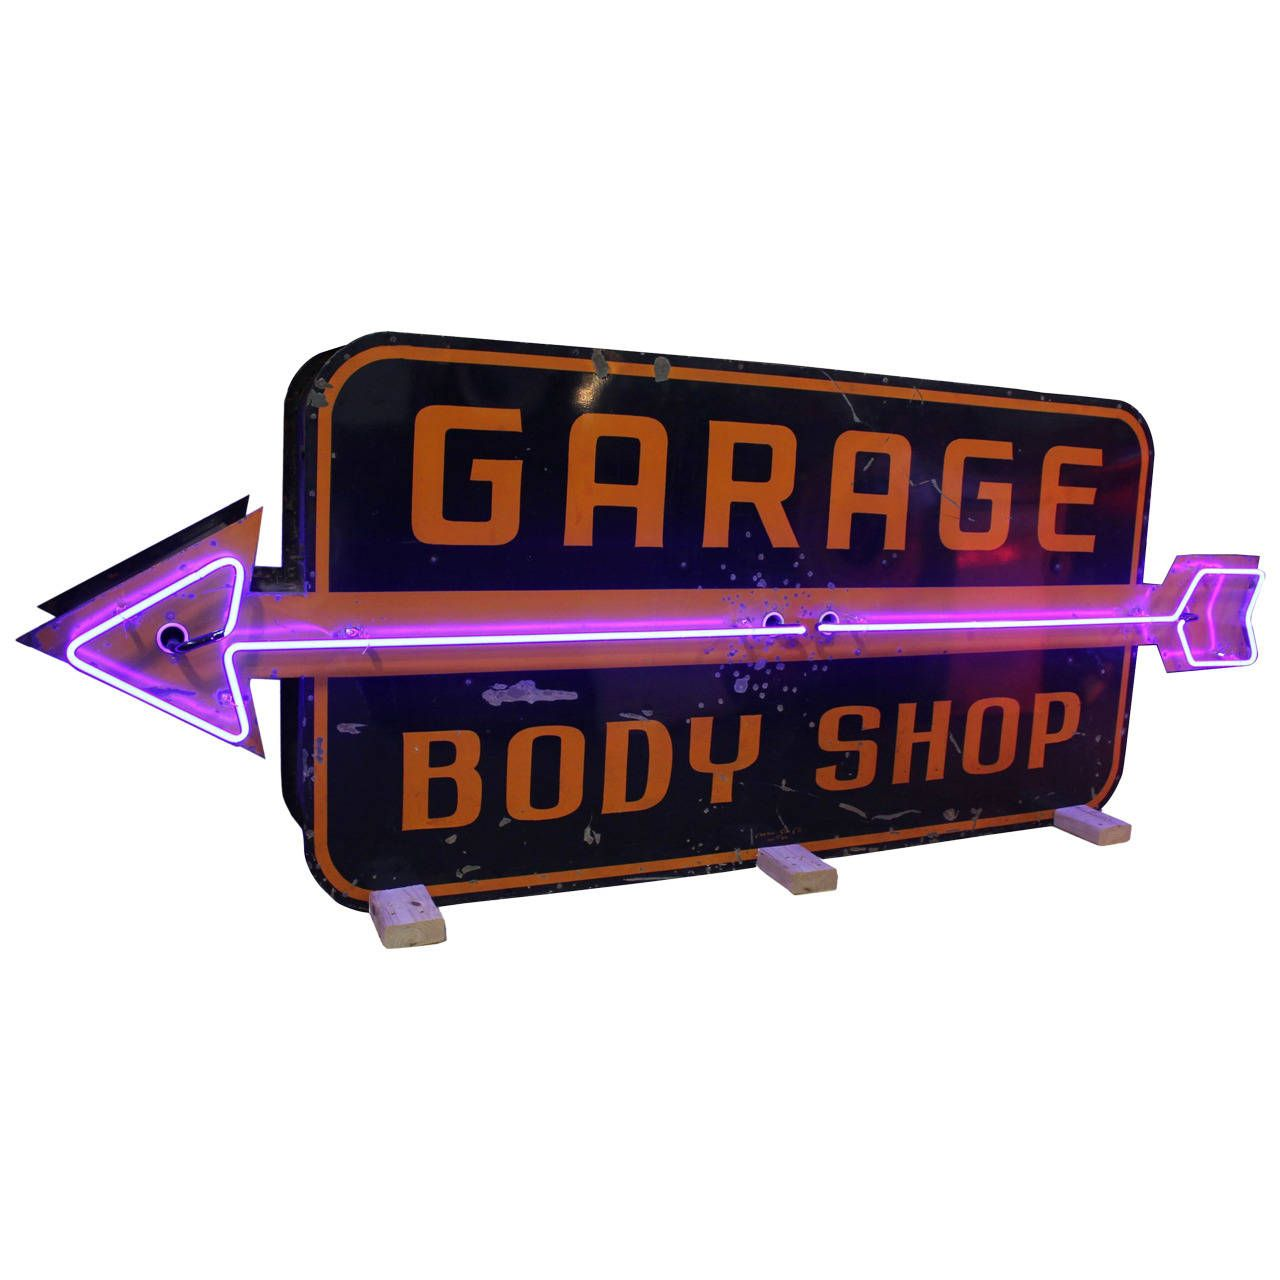 1950s Large Double-Sided Garage Body Shop Neon Sign | Vintage ...